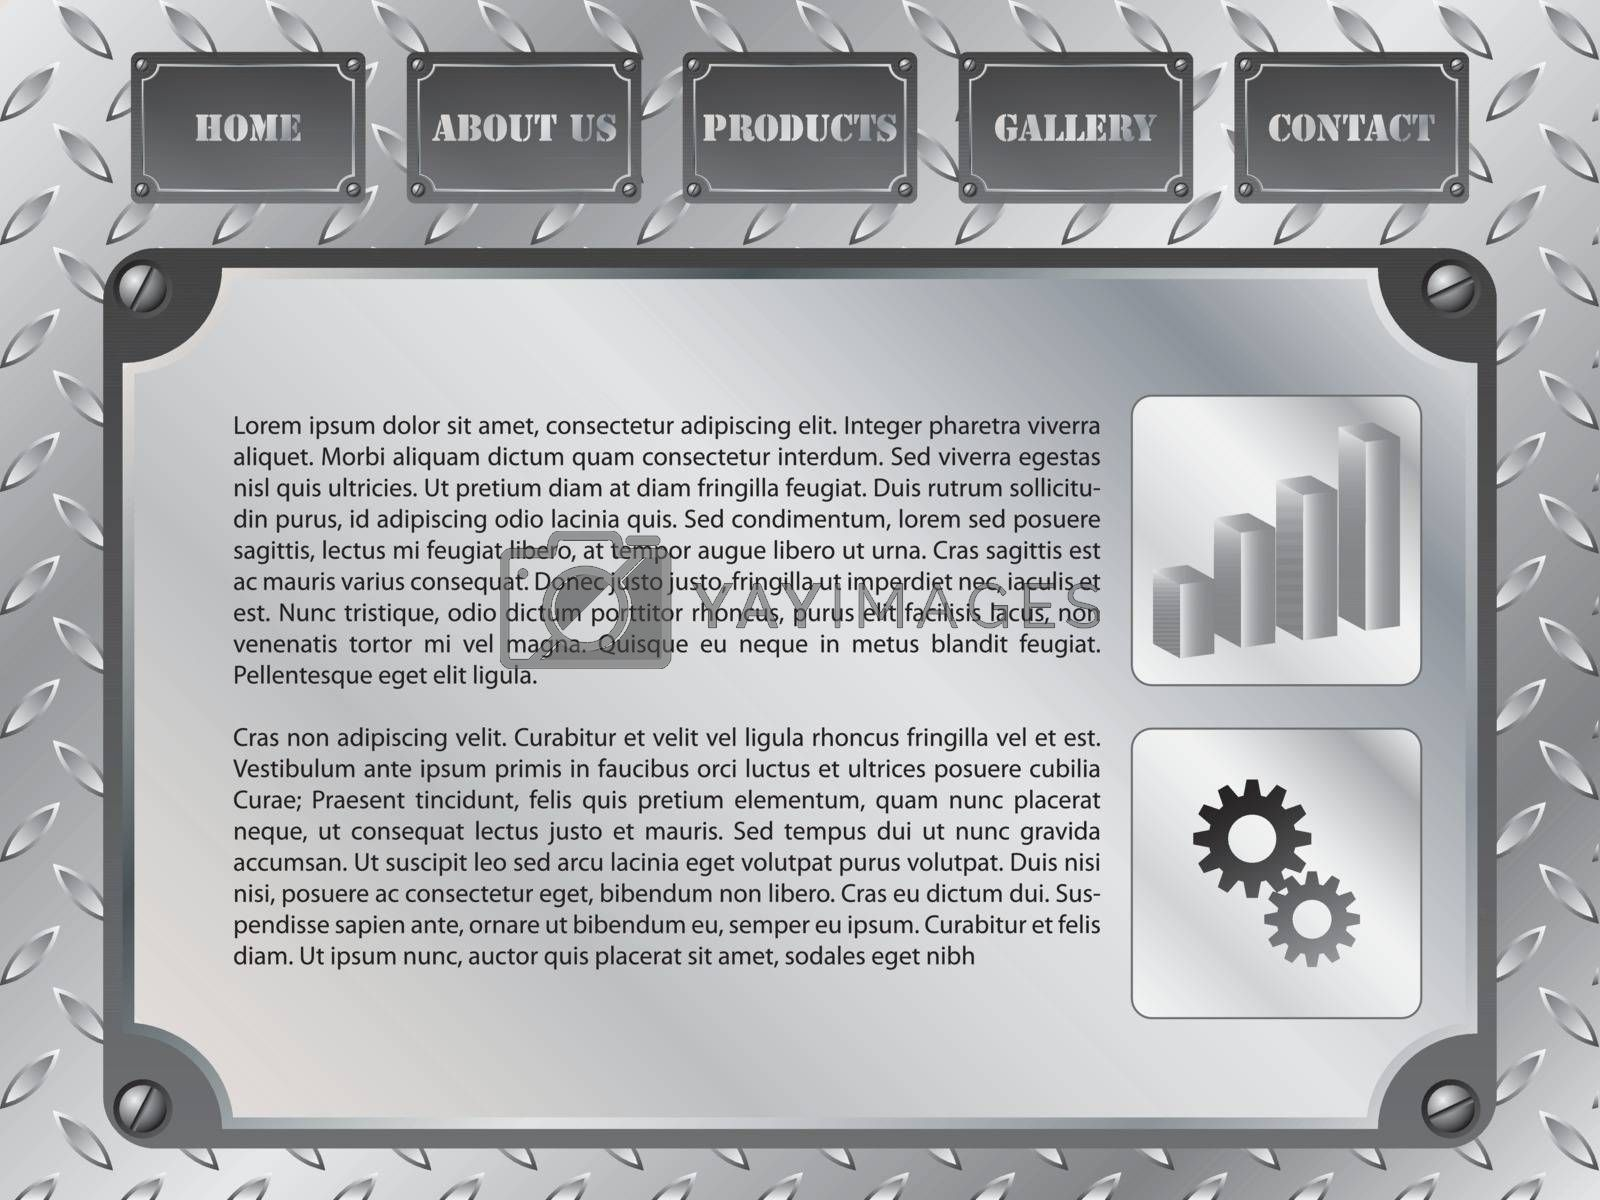 Web template design with metallic industrial elements